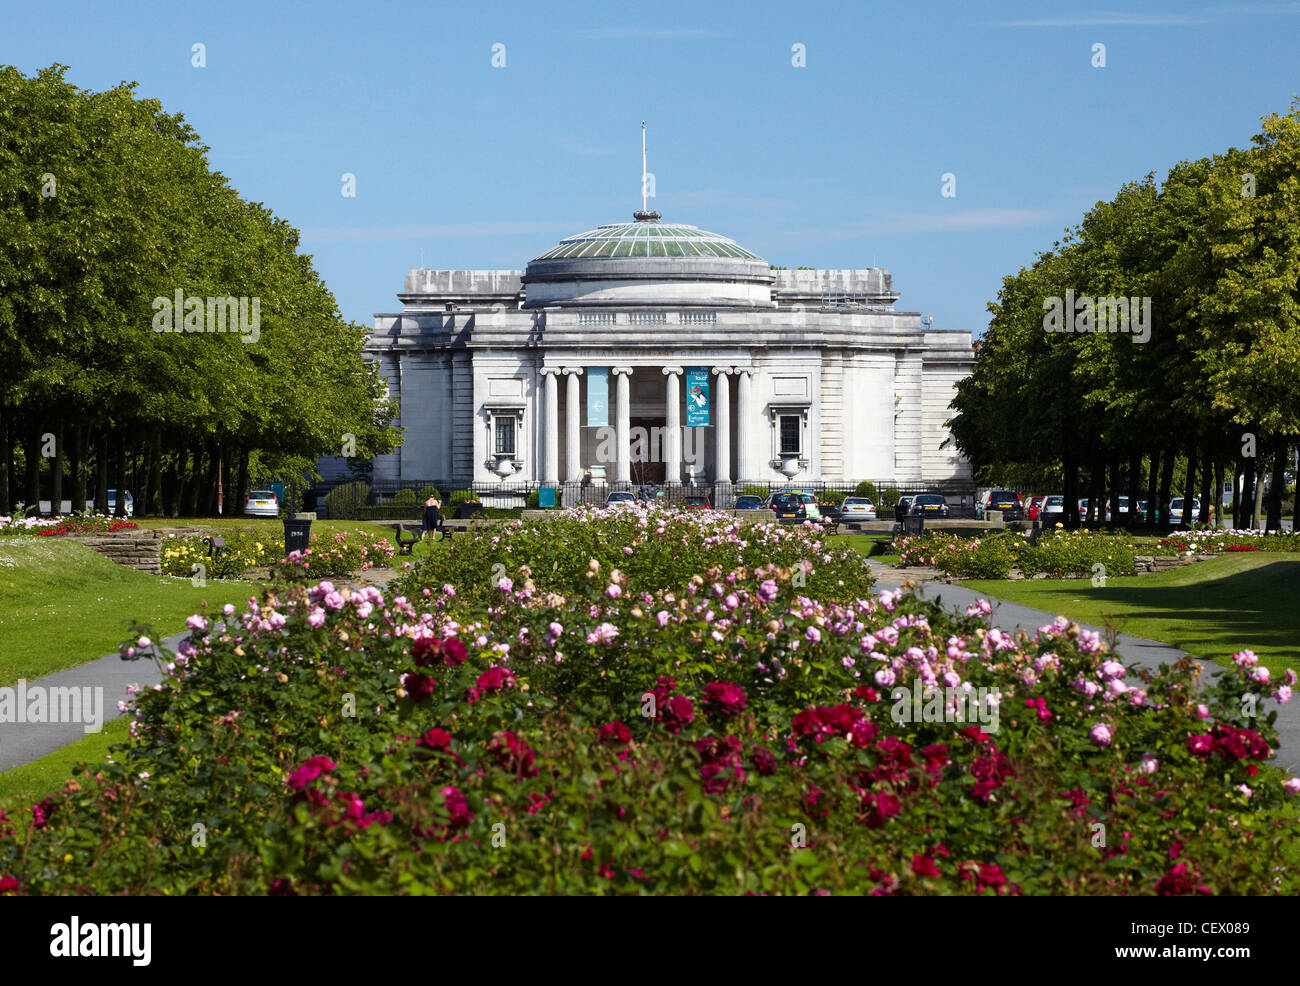 Avenue of roses leading to the Lady Lever Art Galllery in Port Sunlight village, Wirral, UK - Stock Image